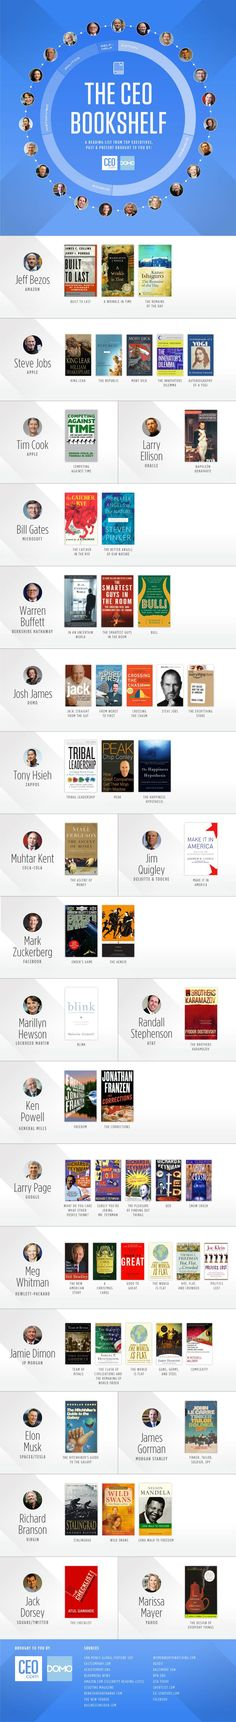 Nonfiction and fiction books from top executives.